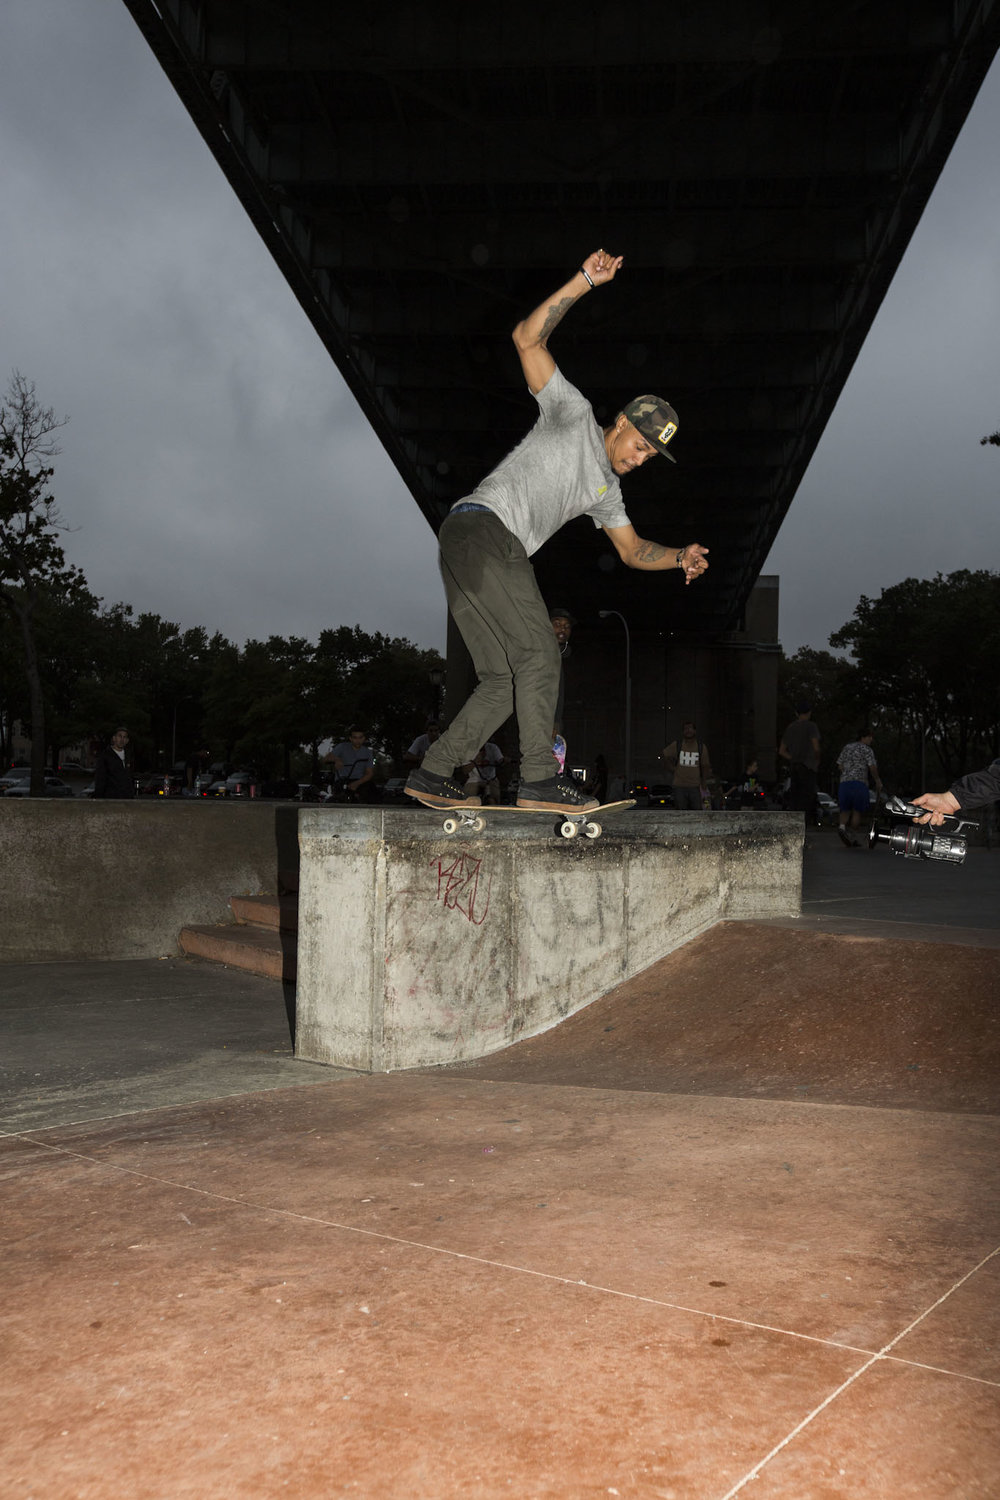 Derek Holmes was flipping in and shoving out of this backside tailslide.